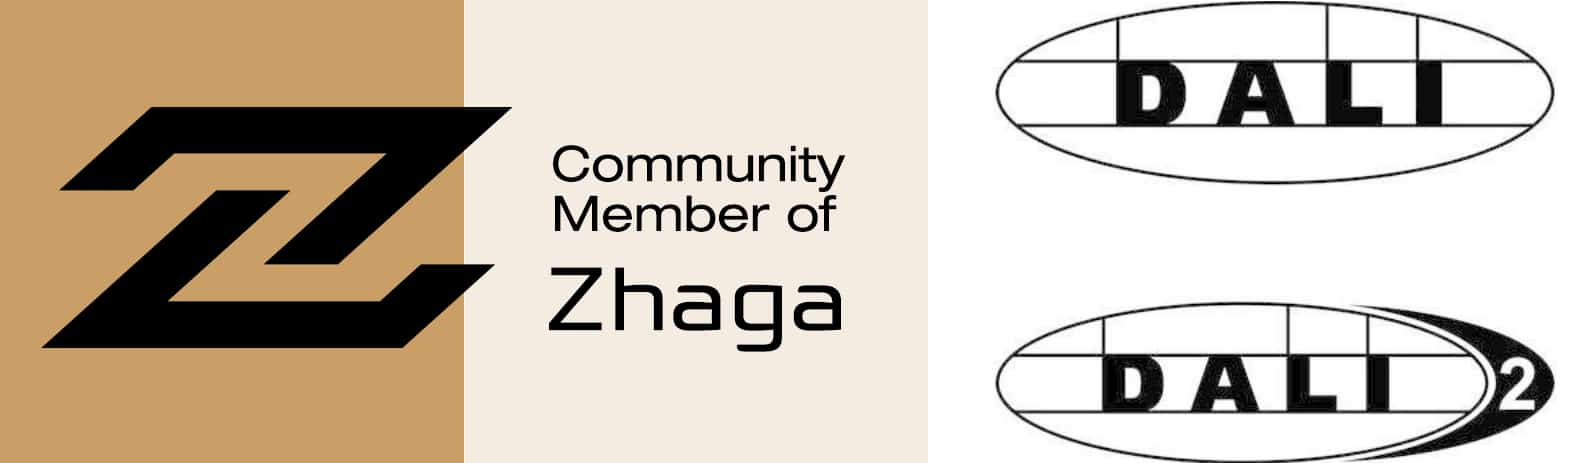 LIGMAN joins Zhaga and DiiA as Community Members